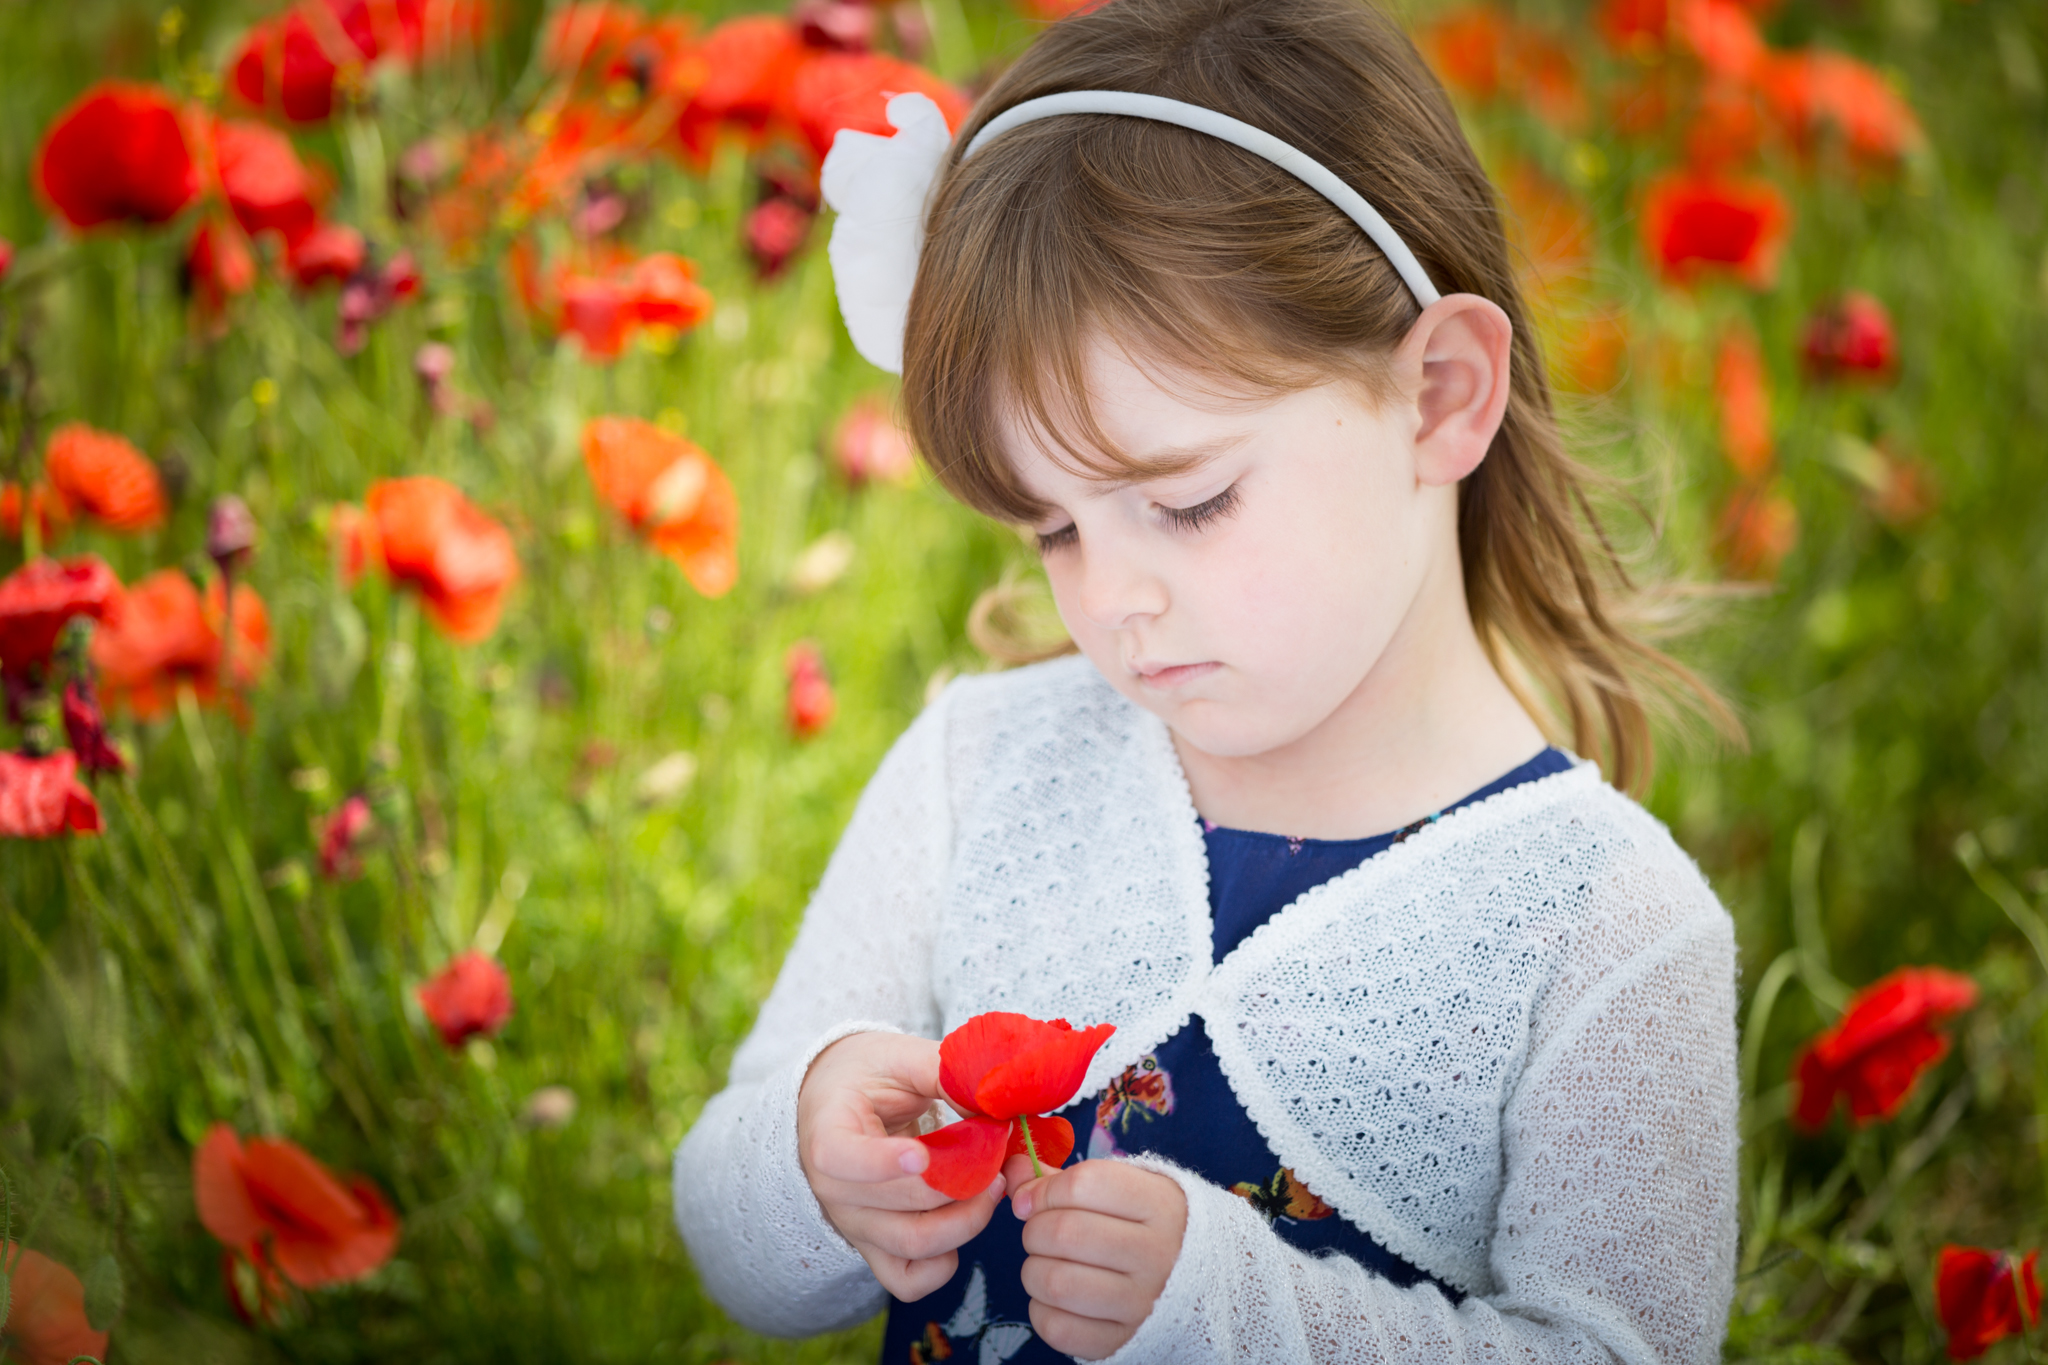 Portrait shot using natural light and a reflector. The poppies are less saturated as the exposure has been lifted.